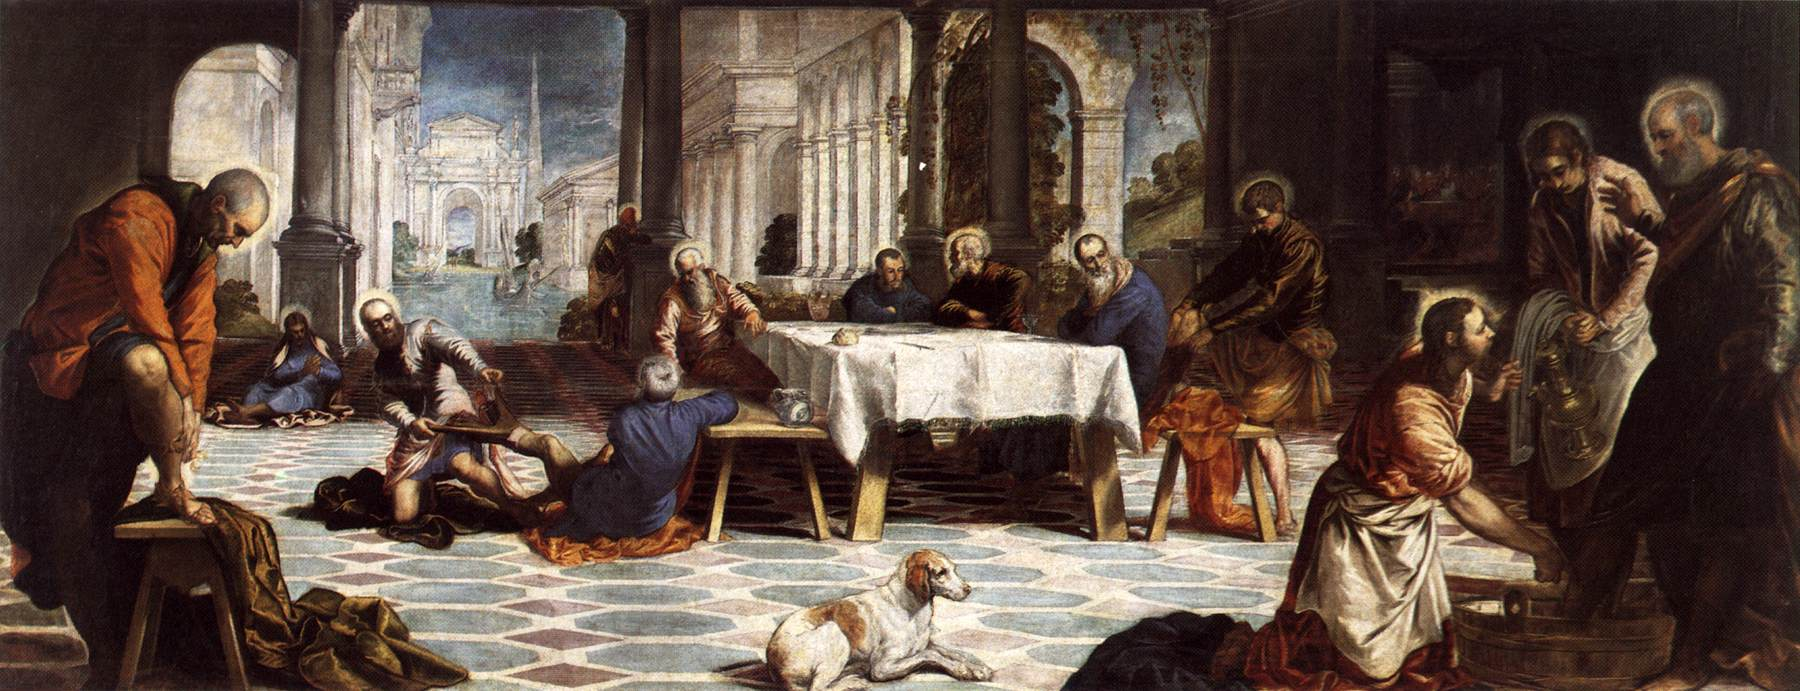 "Maundy Thursday - Tintoretto: ""Christ Washing the Disciple's Feet"""